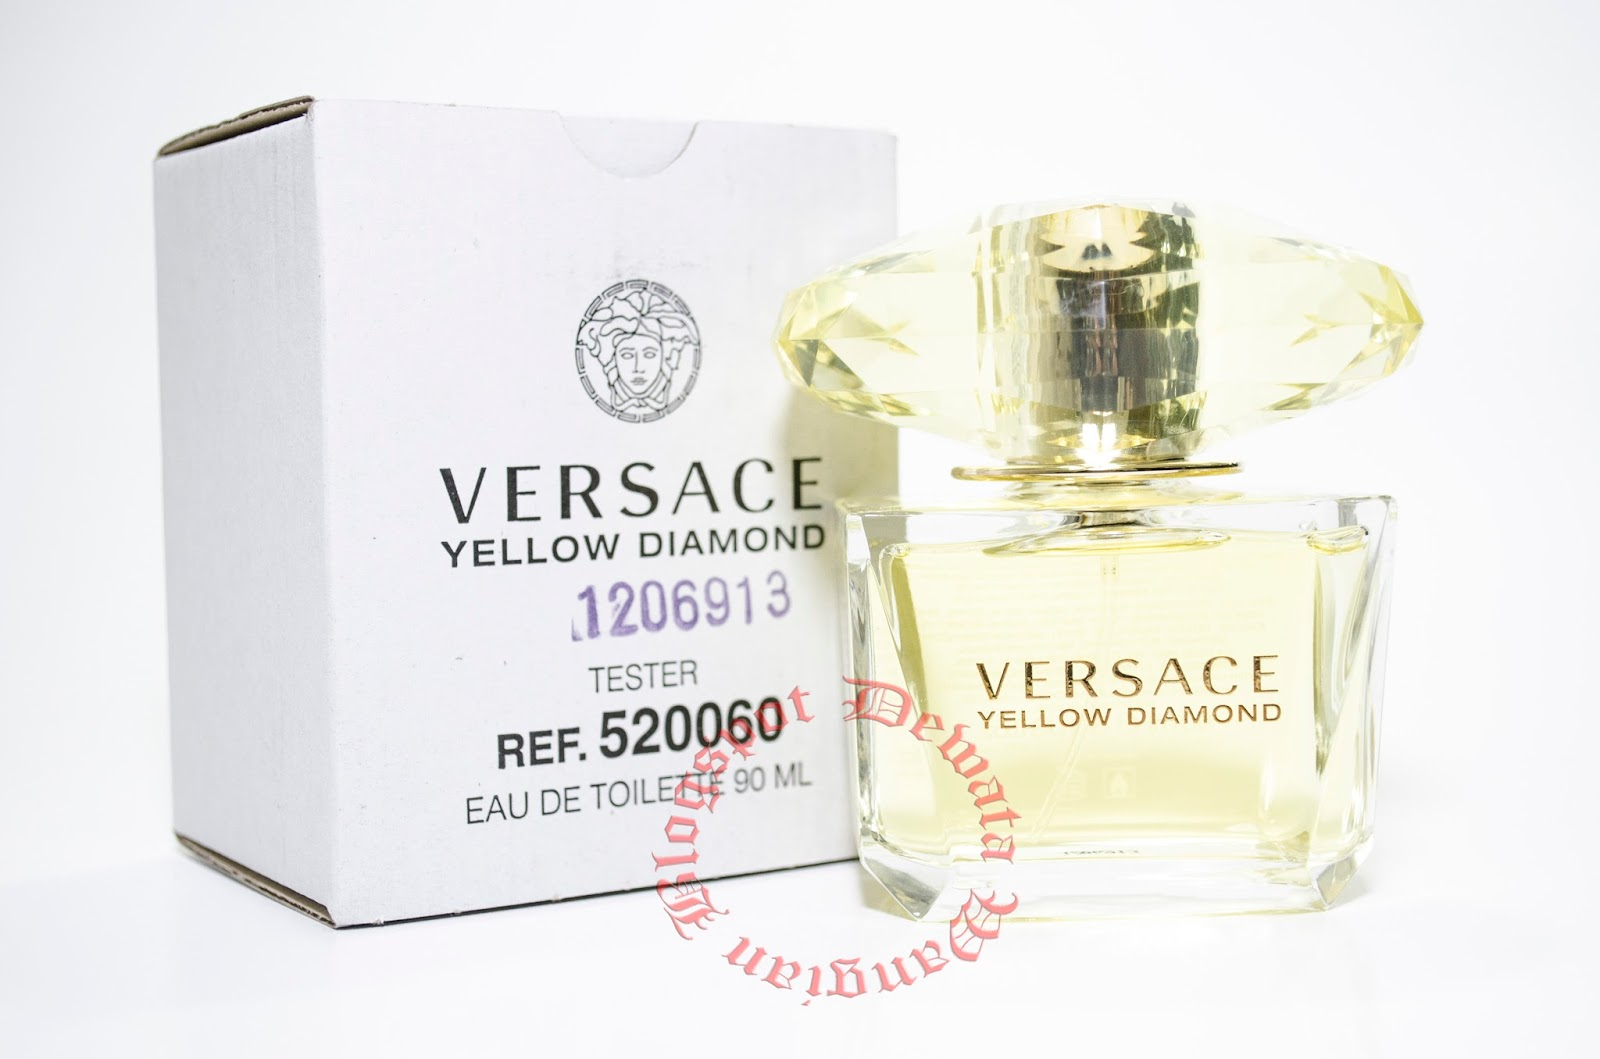 Versace Yellow Diamond Tester Perfume